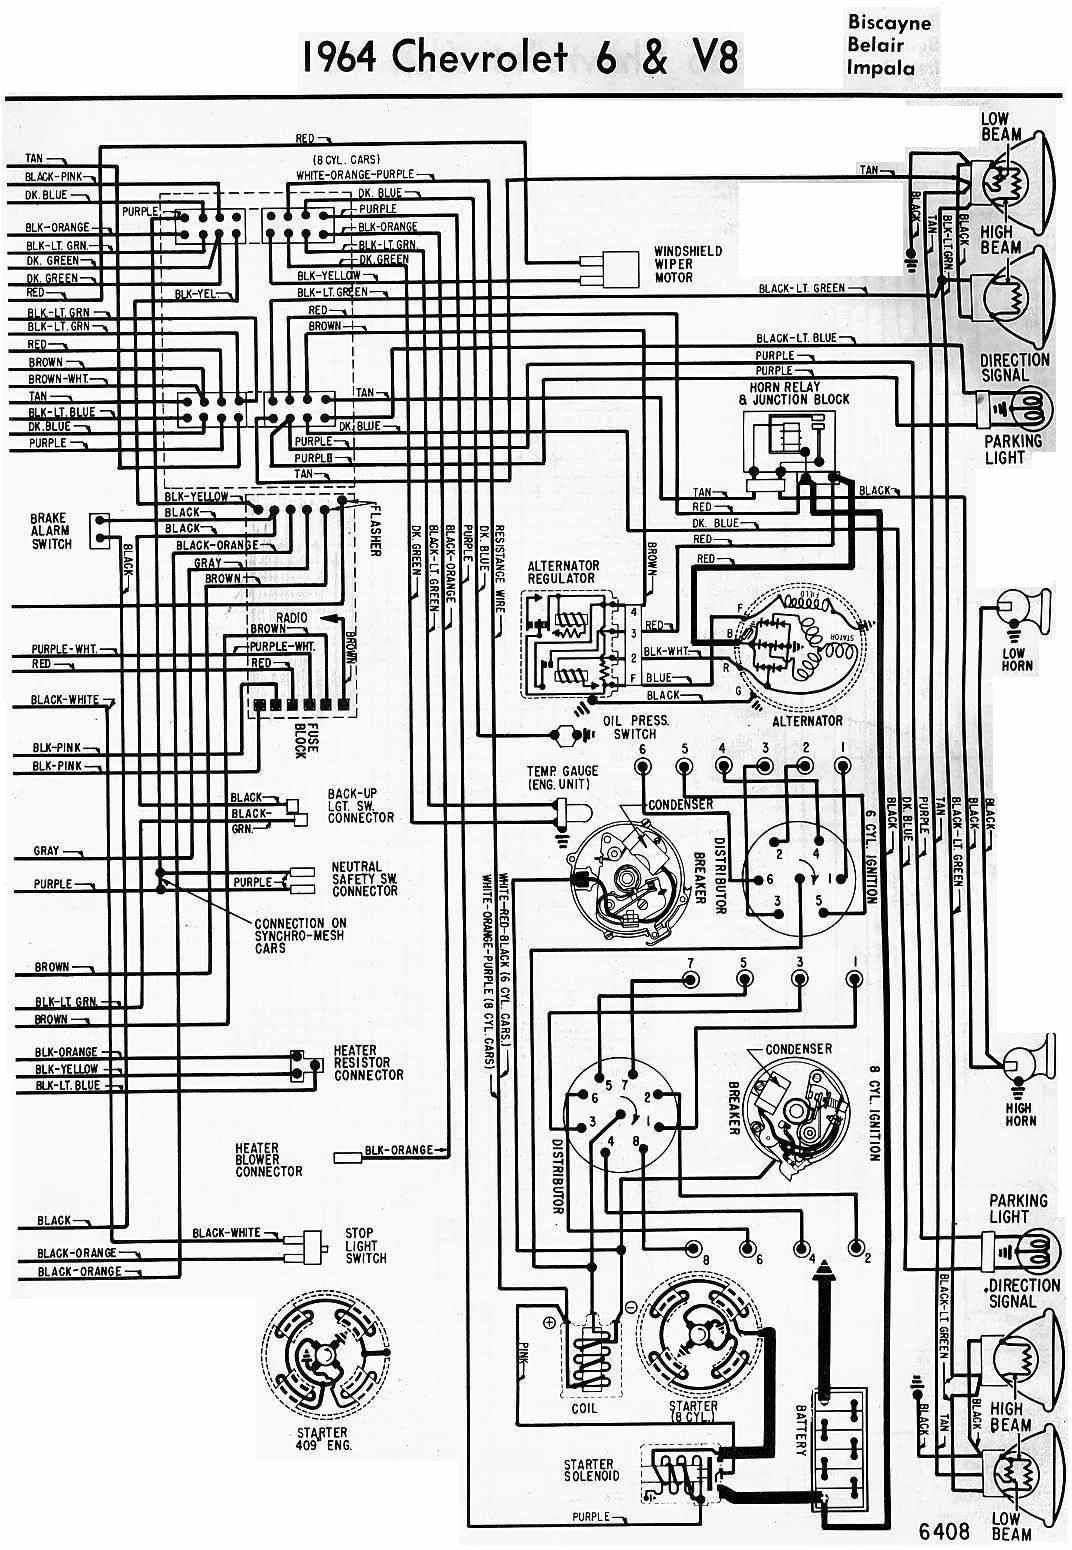 Electrical+Wiring+Diagram+Of+1964+Chevrolet+6+And+V8?resize=665%2C962 sr20de wiring harness diagram wiring diagram sr20det wiring harness at gsmx.co